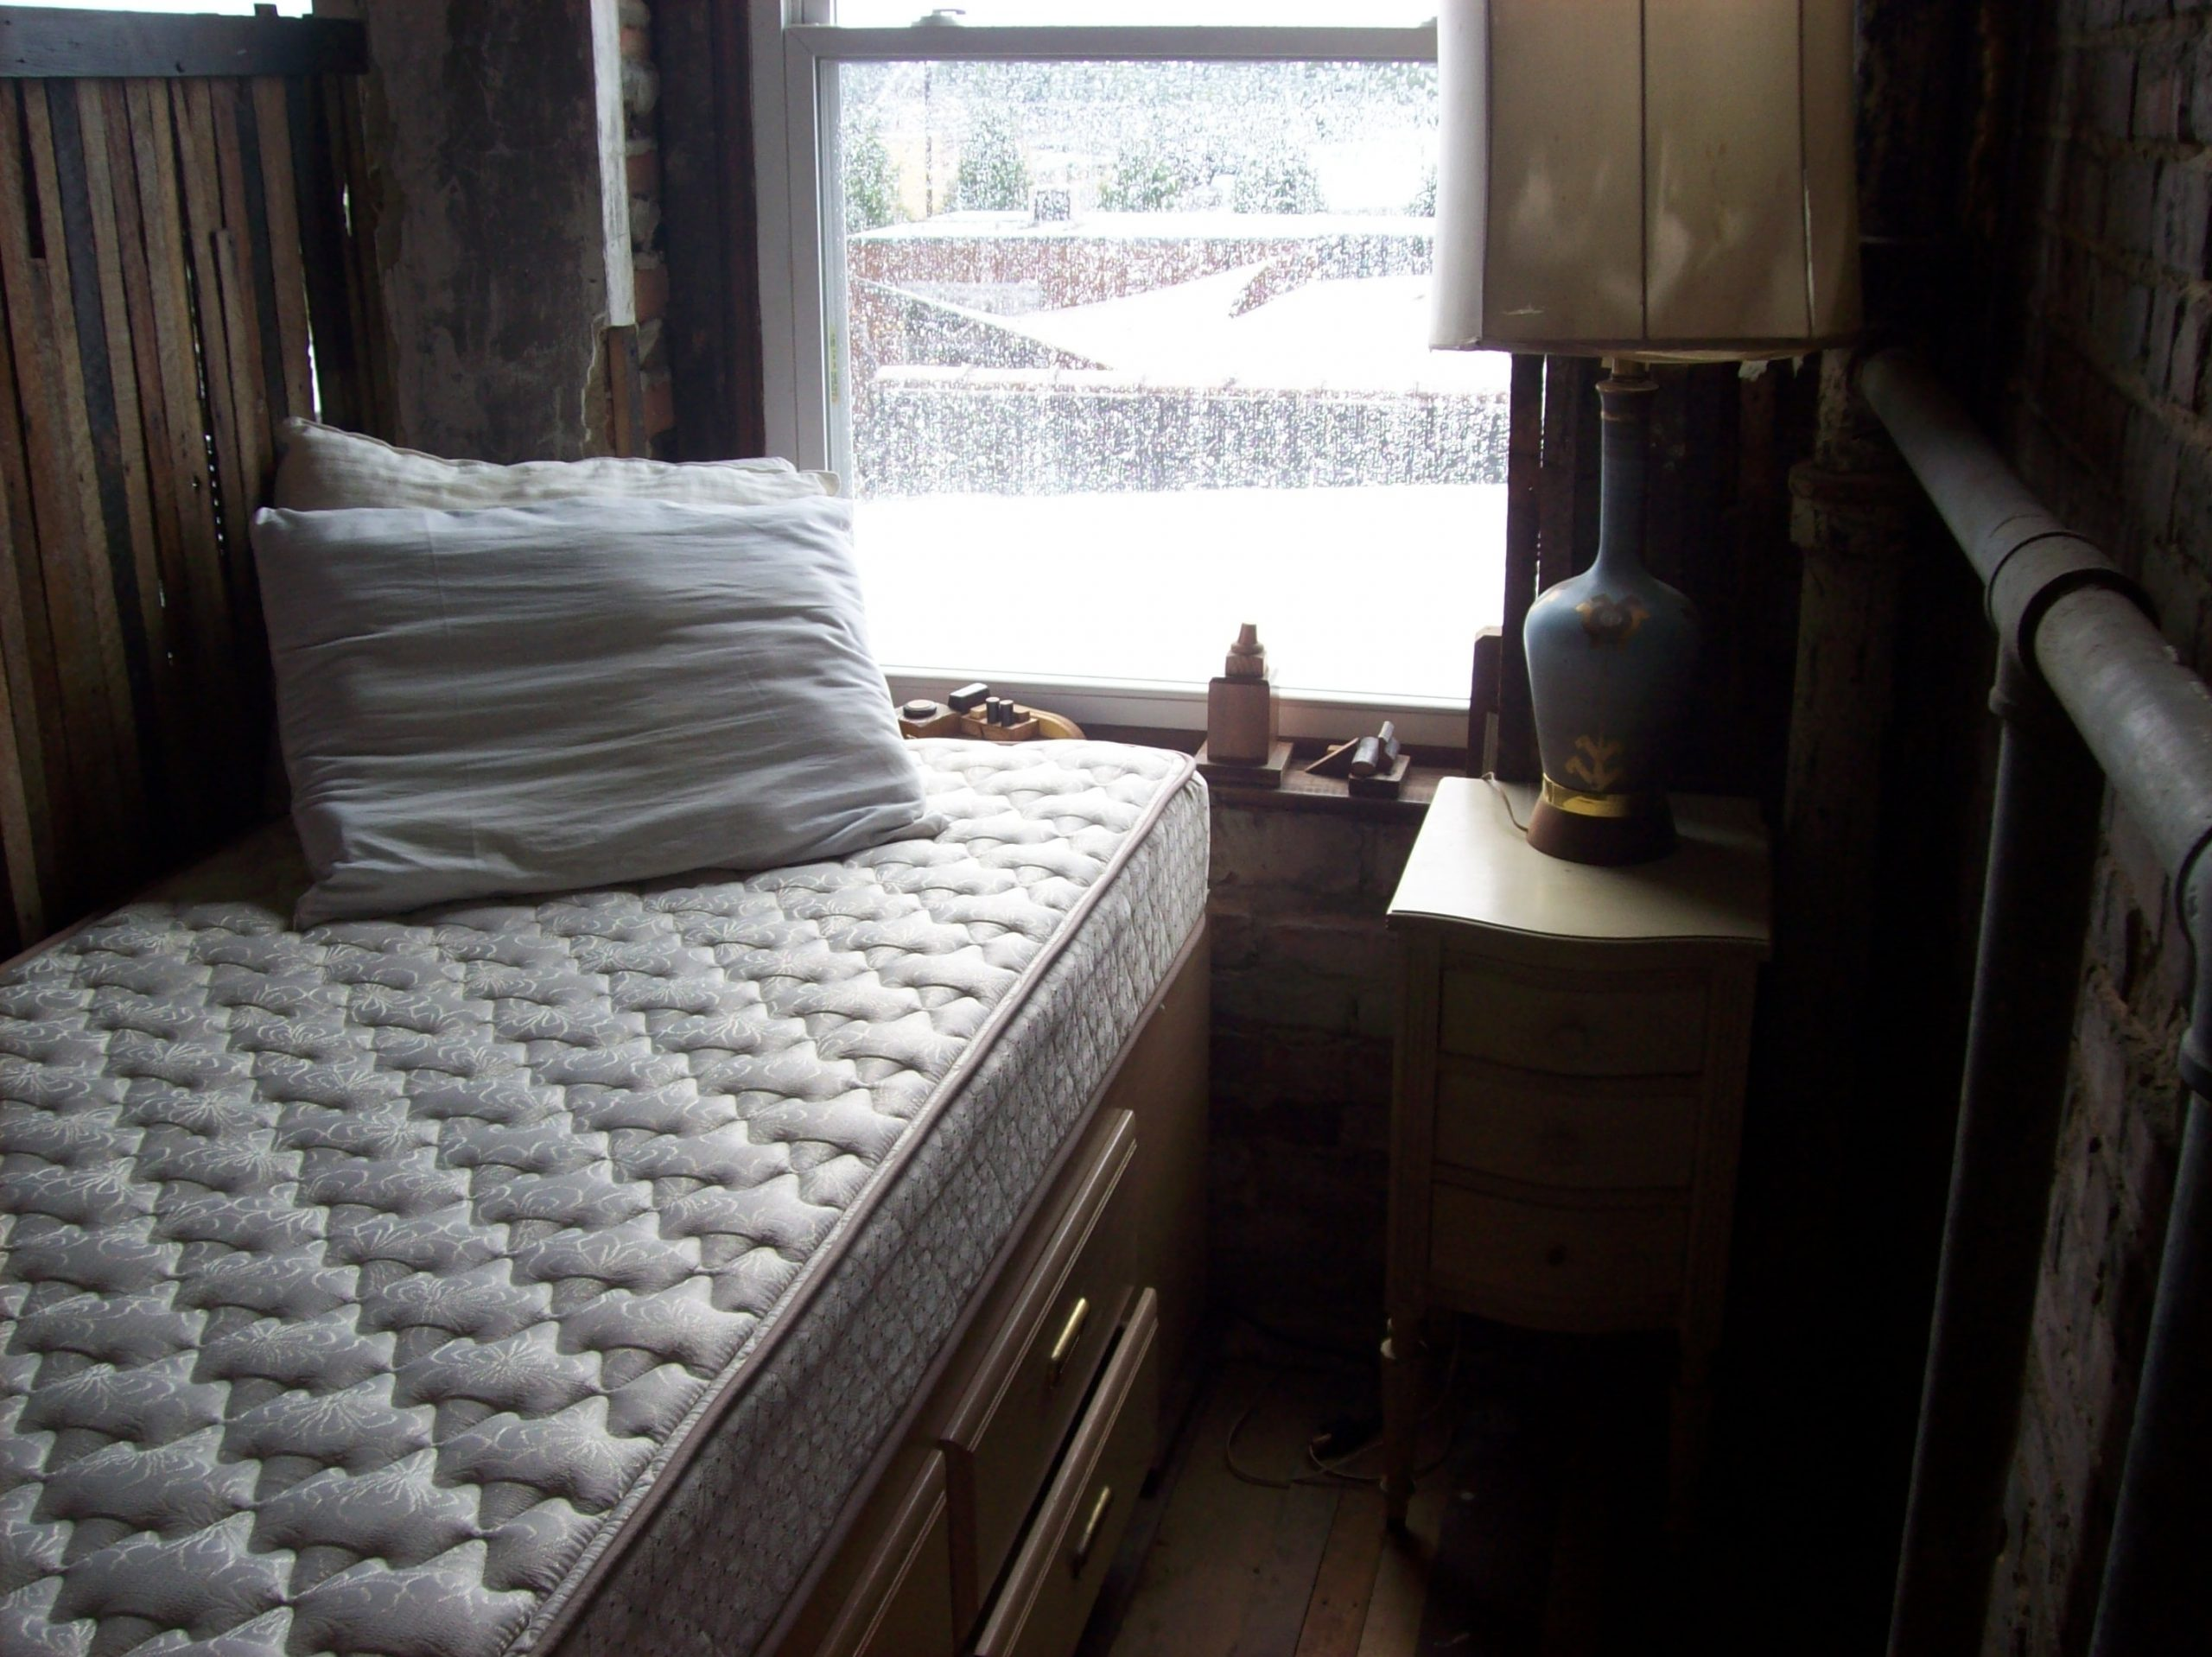 mattress-and-pillows-in-the-bedroom